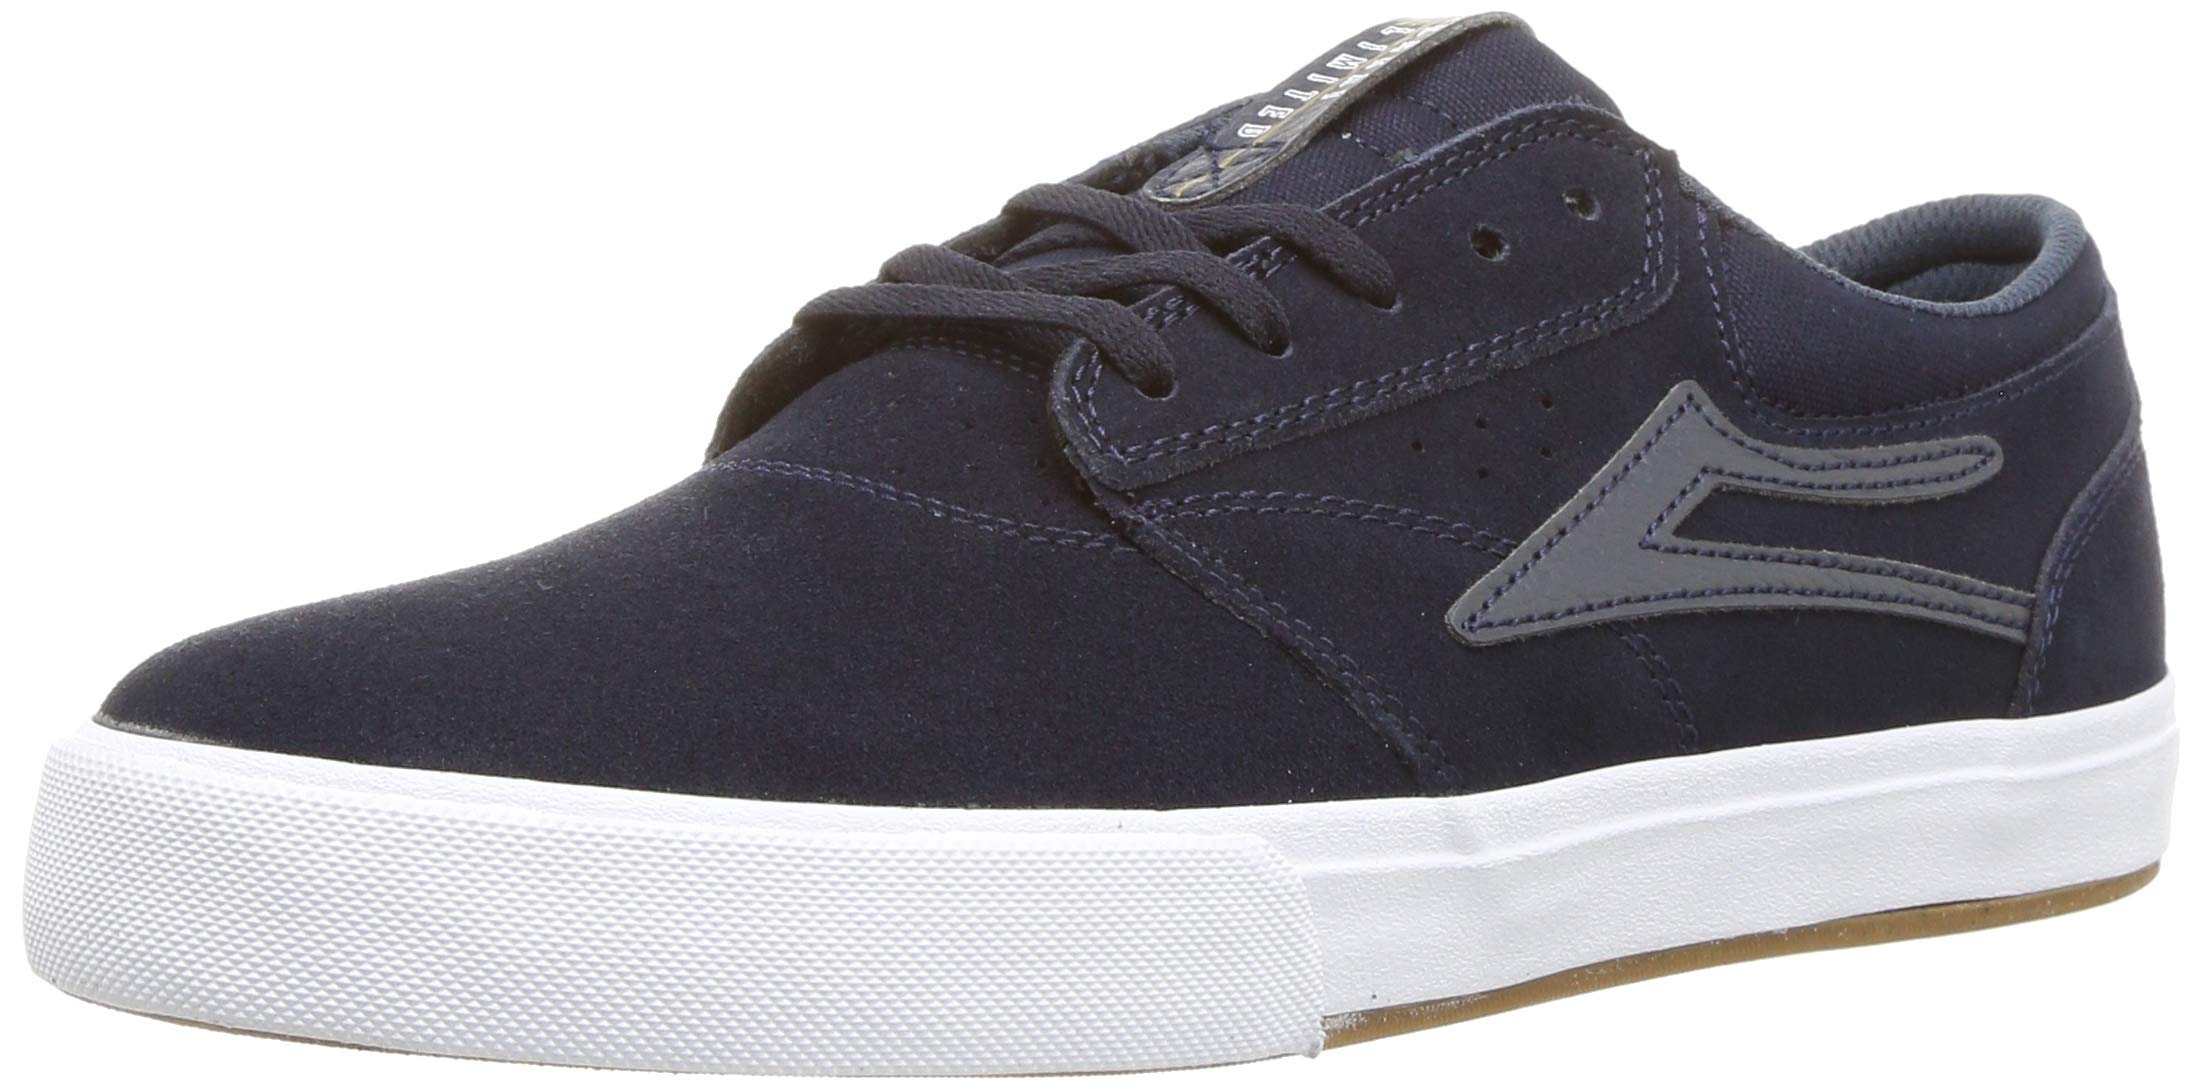 Lakai Limited Footwear Mens Griffin Skate Shoe Navy Suede 11.5 M US by Lakai Limited Footwear Mens